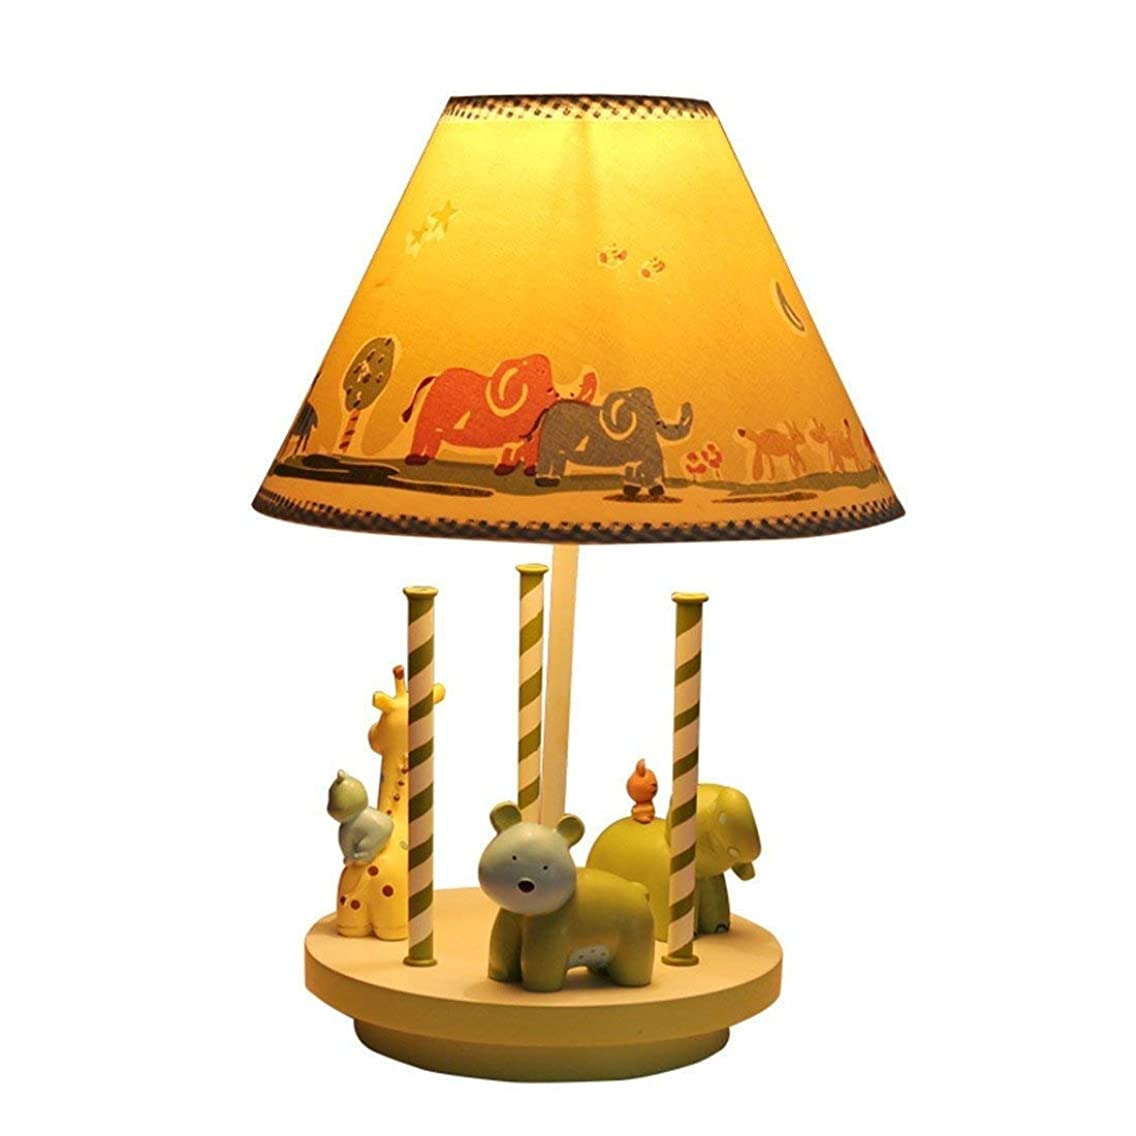 Creative Cartoon Warm Cute Adjustable Lamp Carousel Decoration Reading Gift Children's Room Bedroom Bedside Lamp Desk Lamps